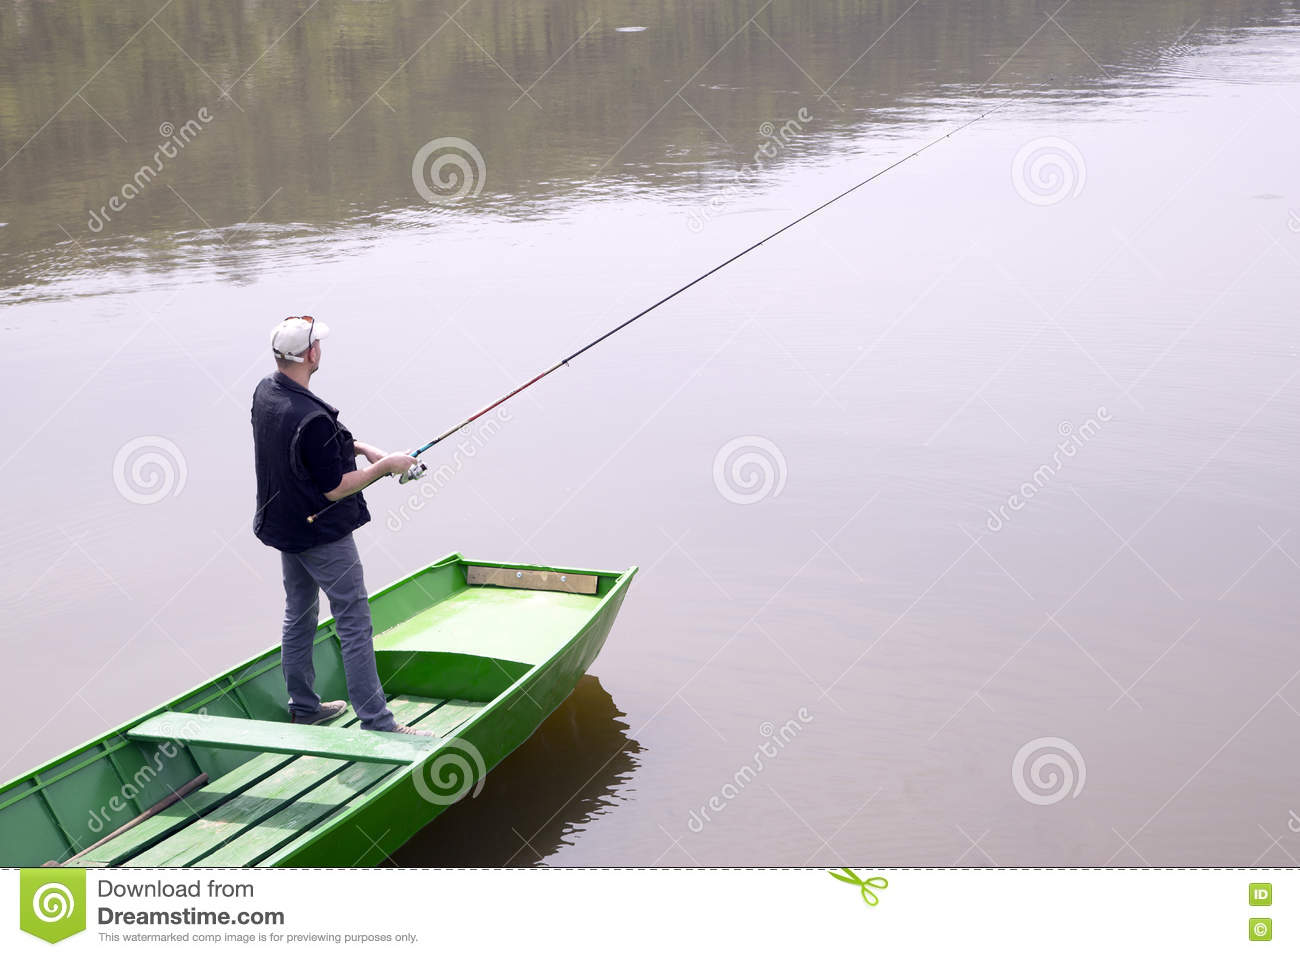 Fisherman Throwing Fishing Rod Stock Image